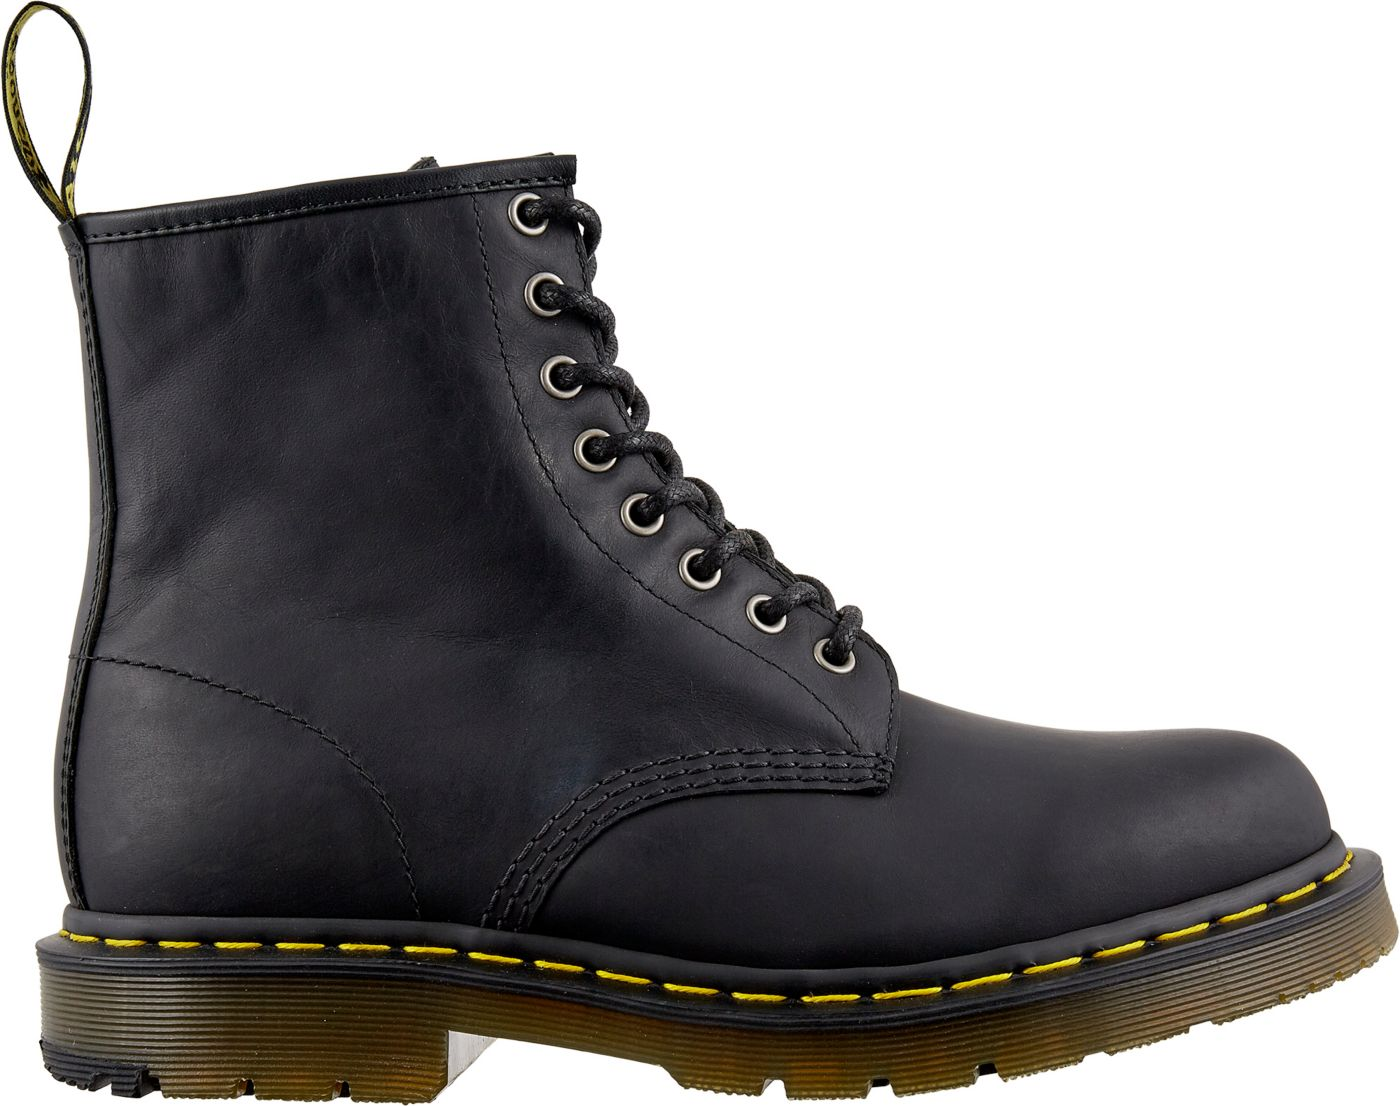 Dr. Martens Men's 1460 WinterGrip Winter Boots